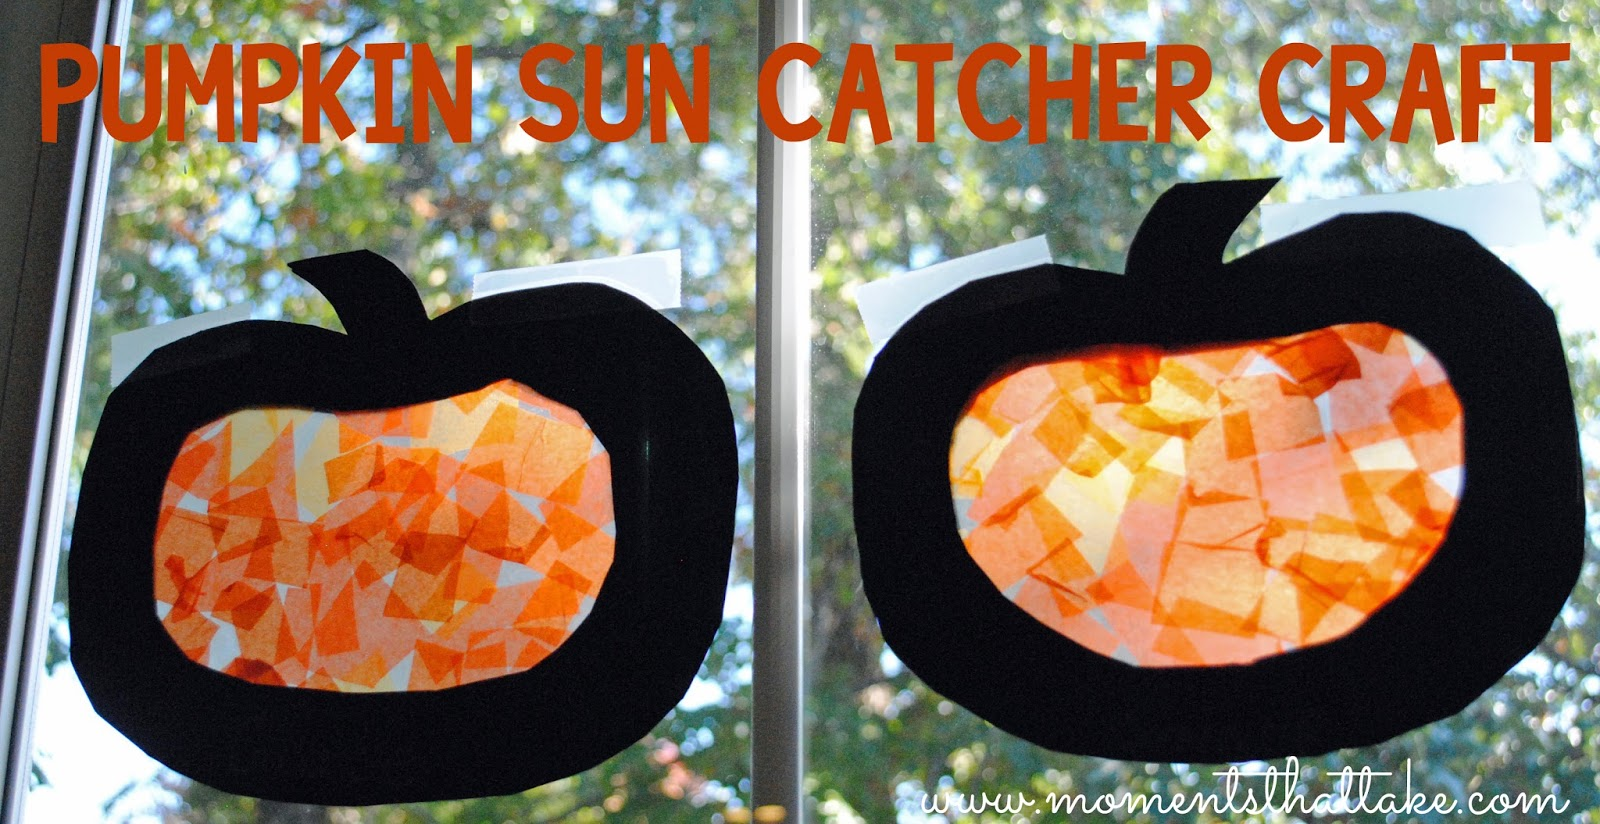 Pumpkin Suncatcher Craft for Toddlers